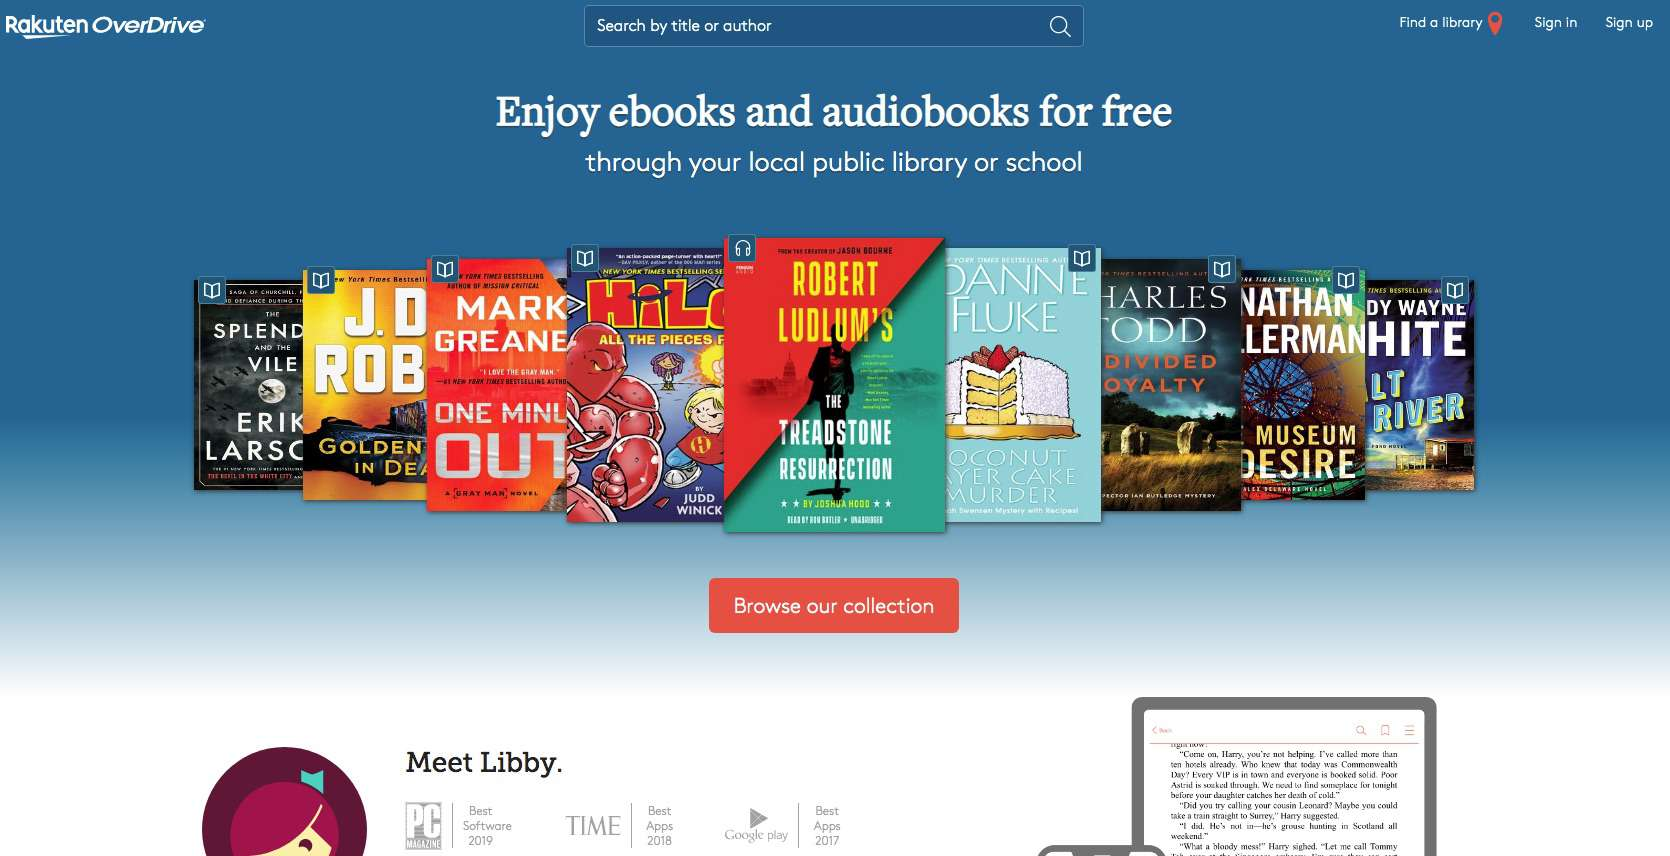 Screenshot of OneDrive service to obtain free Nook books from public library